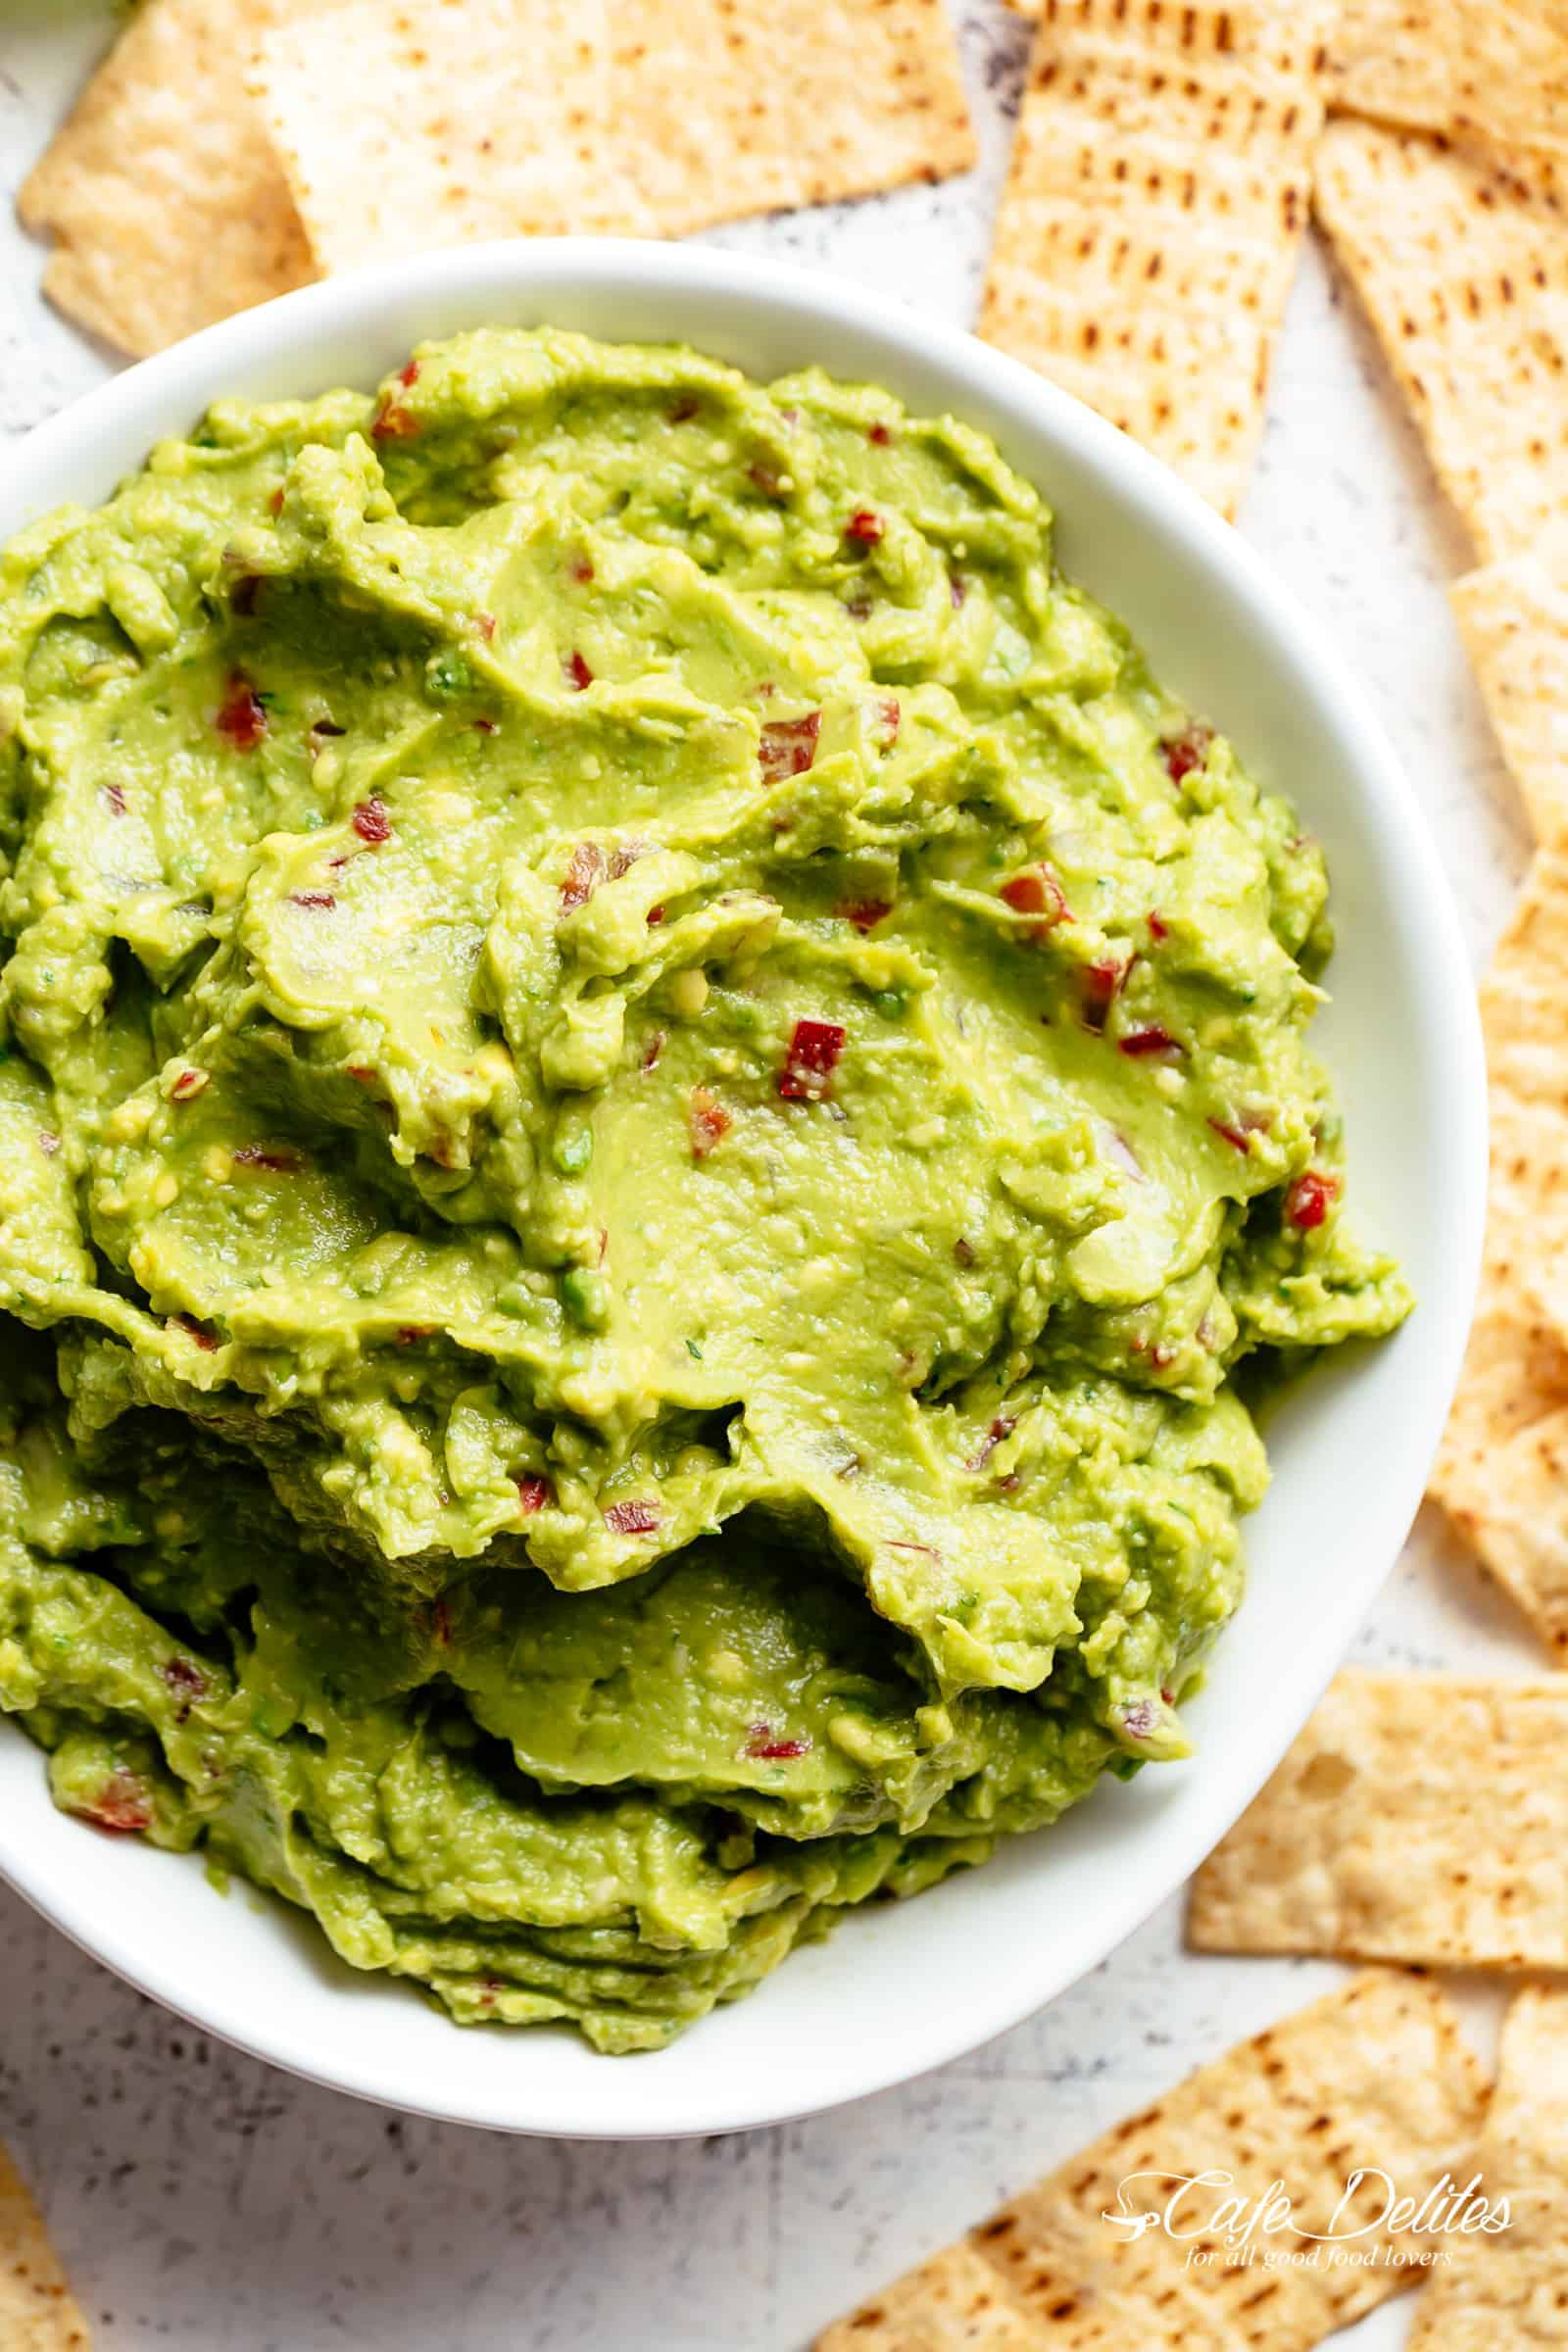 Condiment - Homemade Guacamole, Grocery, Anneliese Schools - LIESAS